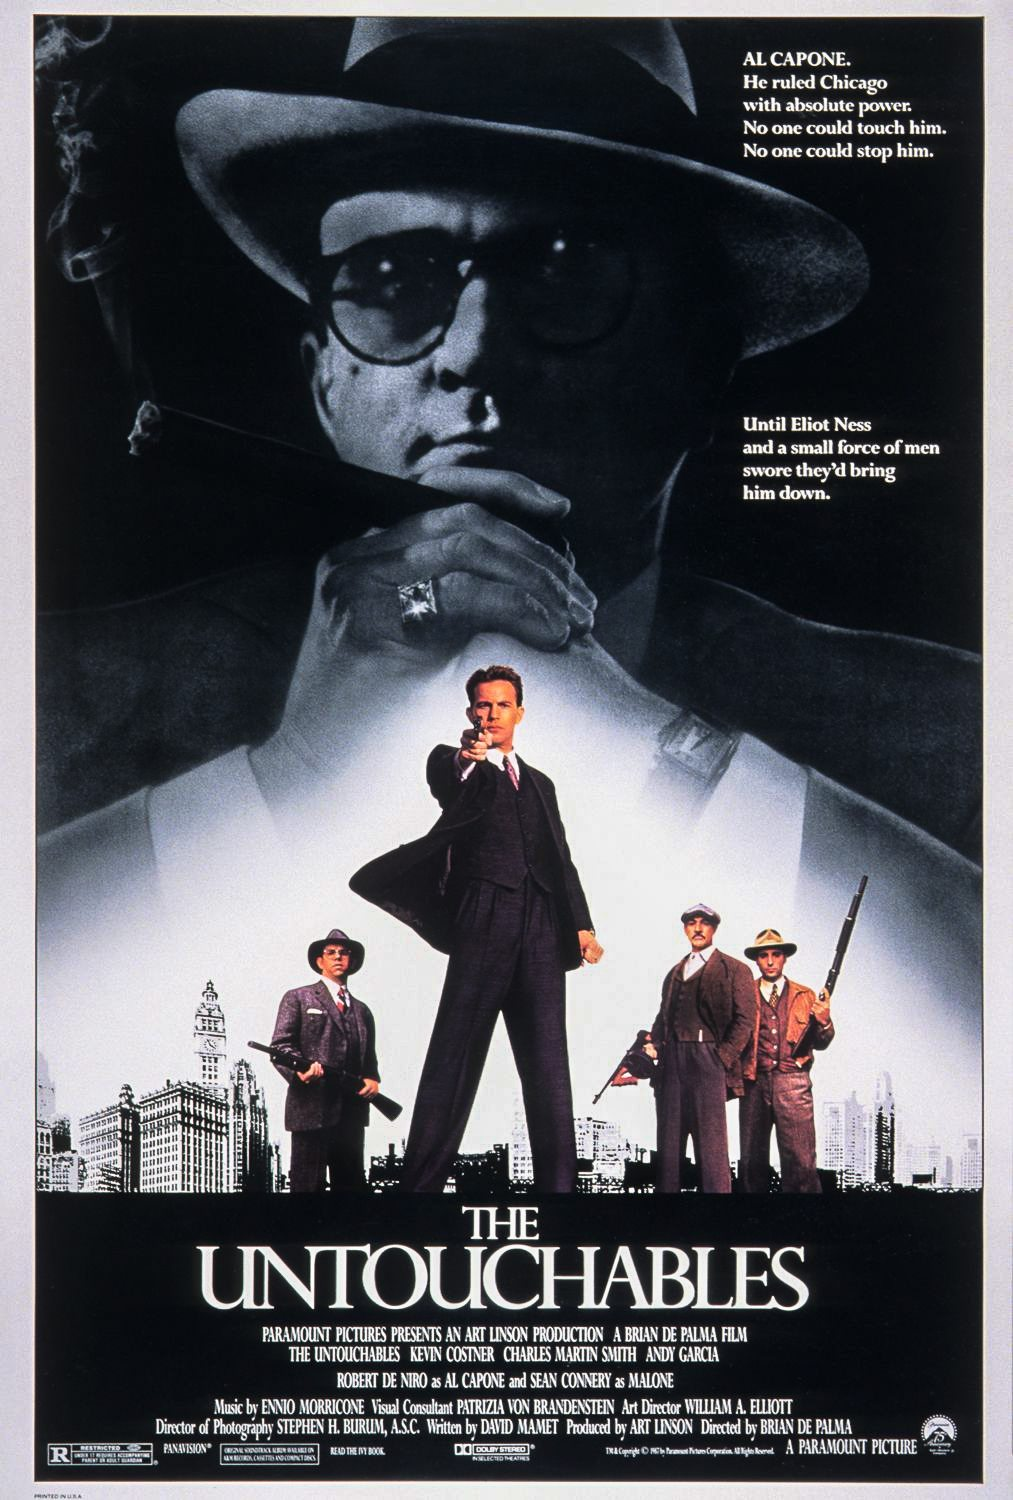 The Untouchables [VoicesFILM.com] [1013 x 1500] (1)